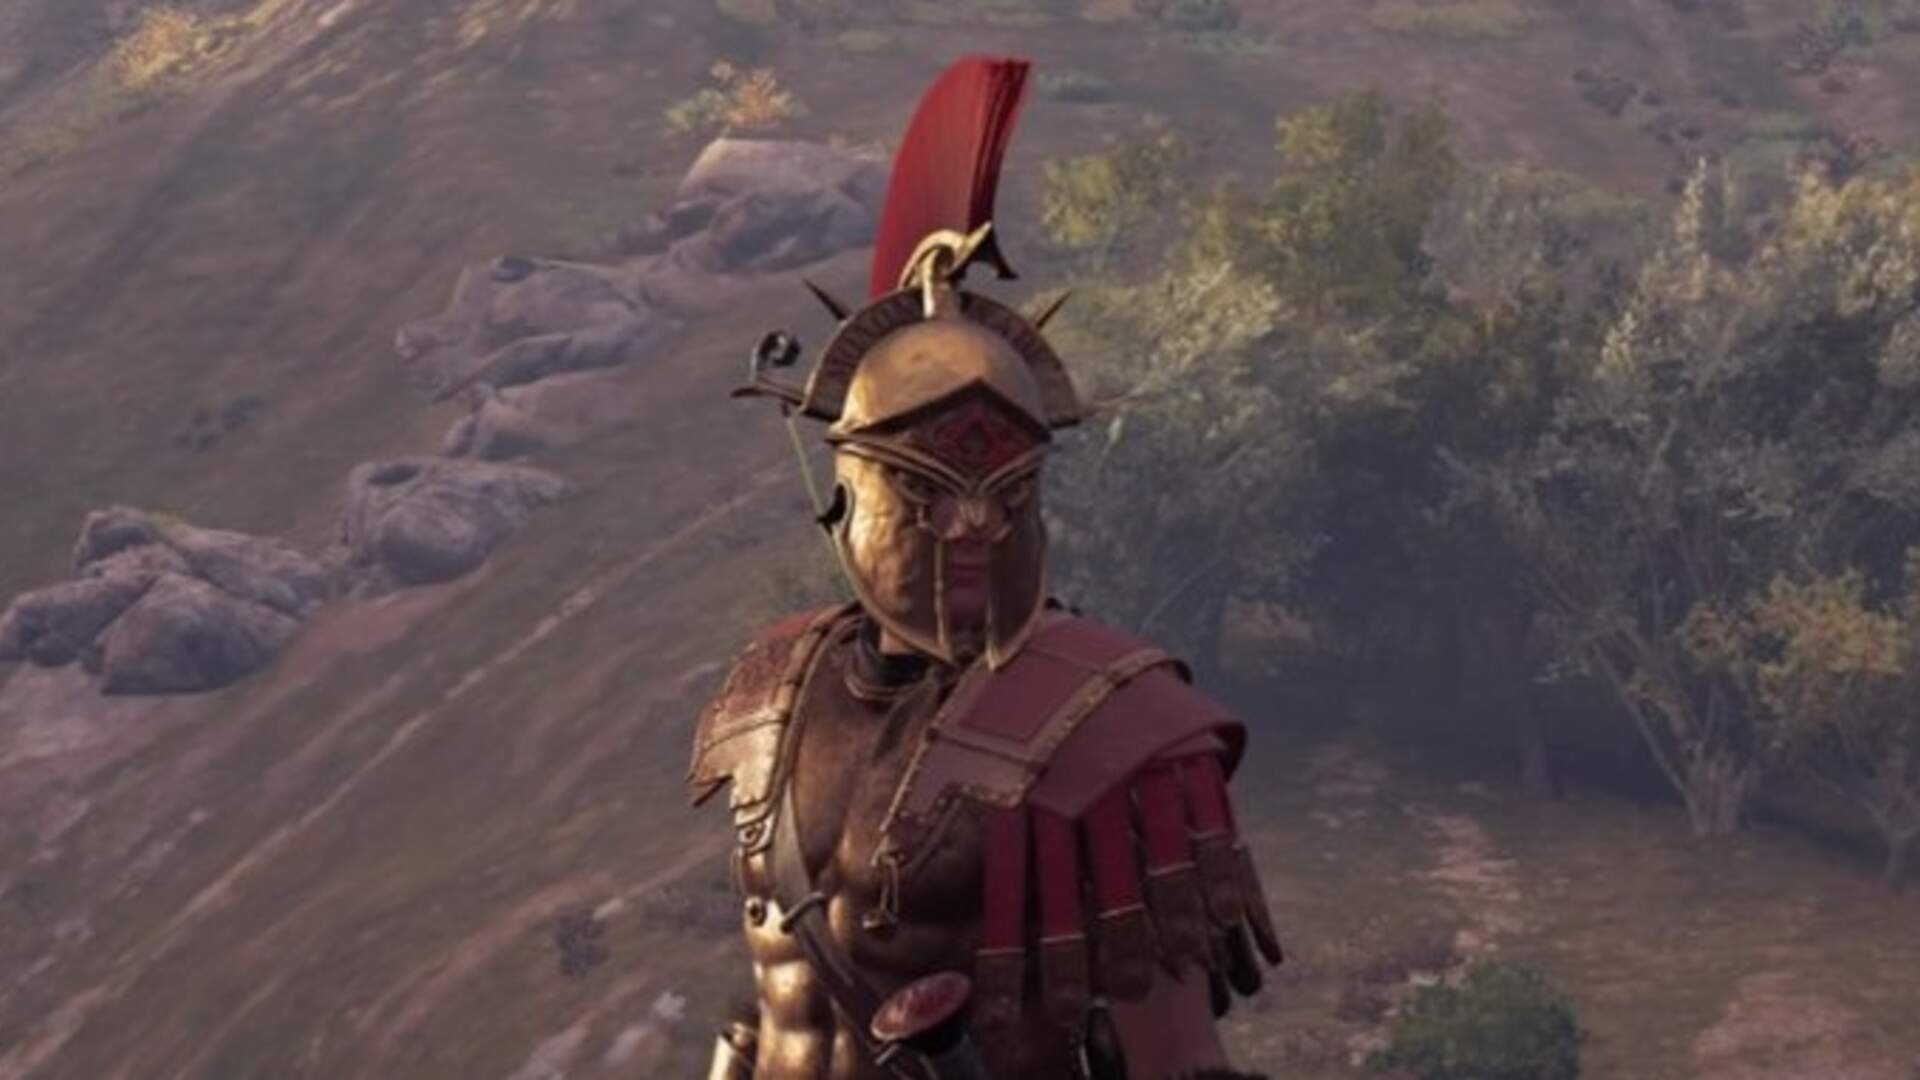 assassins creed odyssey pephka arena location